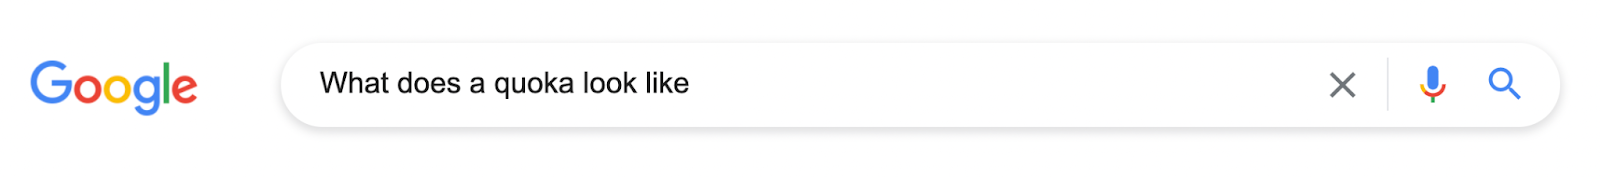 Search query in the Google search bar